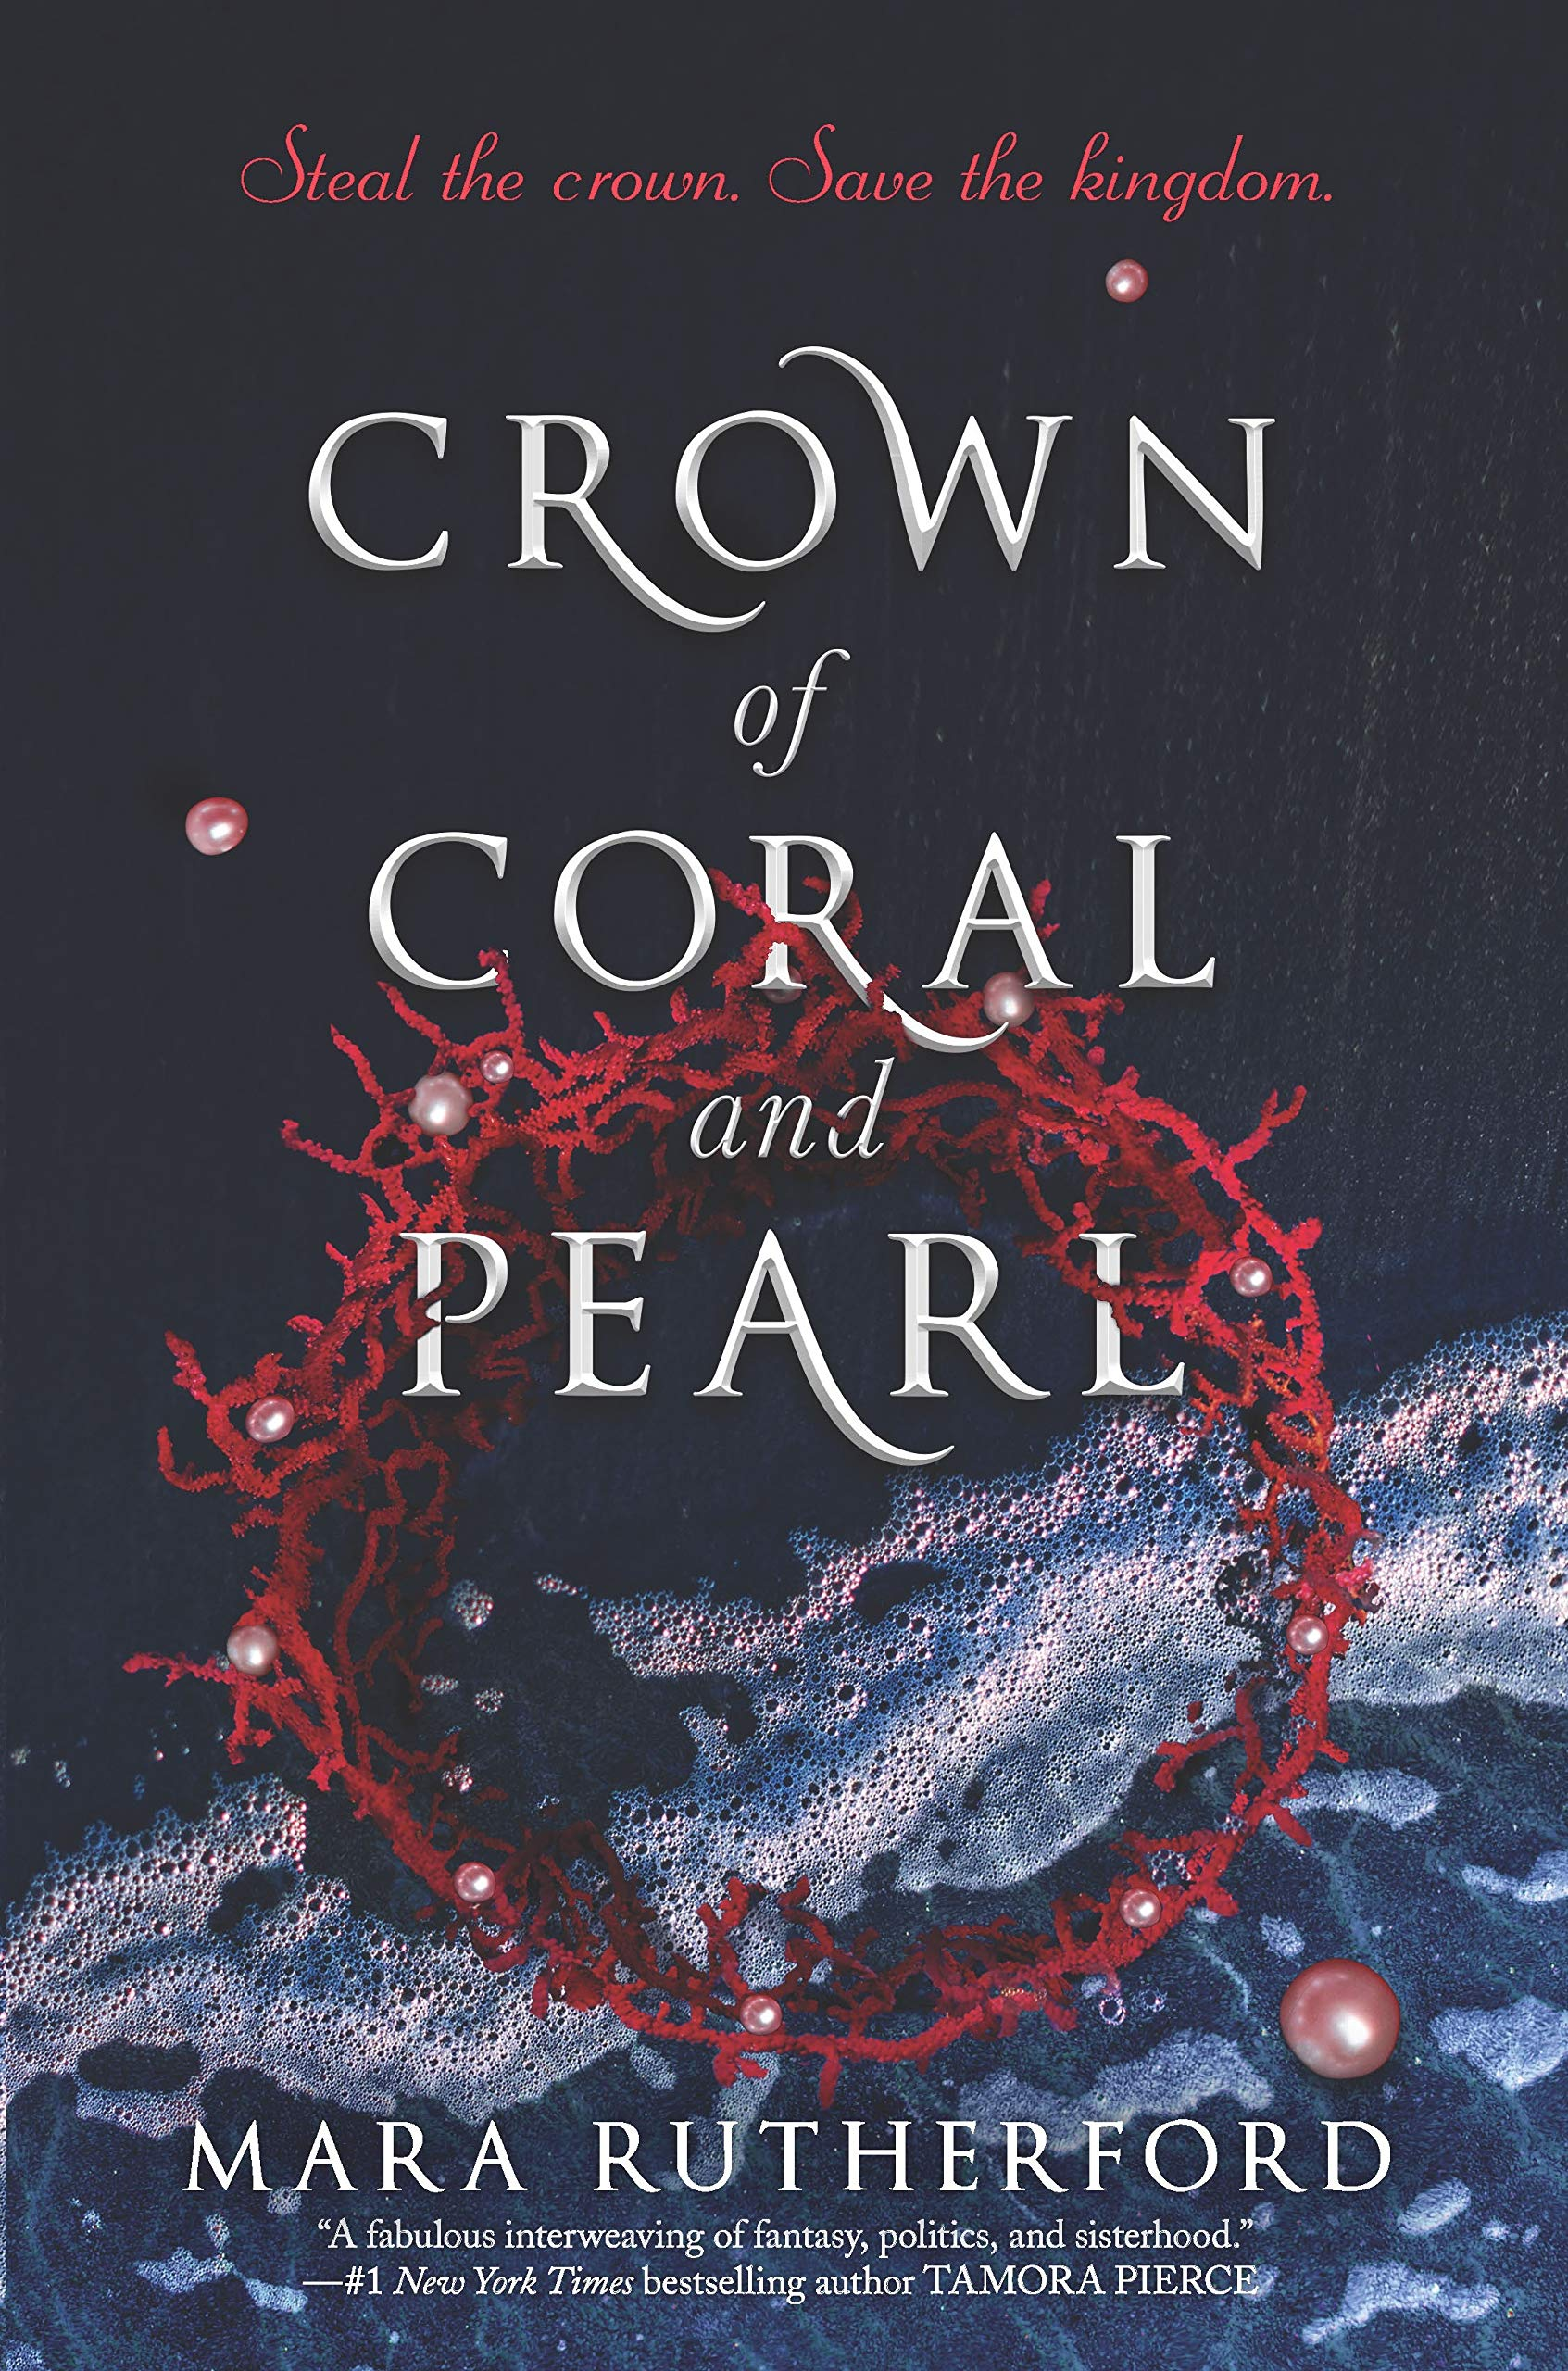 Title:  Crown of Coral and Pearl #1 , Author: Mara Rutherford, Publisher: Inkyard Press, Publish Date: August 27, 2019; Genres + Tags: YA, Young Adult, Fantasy, Romance, YA Fantasy Romance, Royalty, Political Intrigue, Cover Art Love